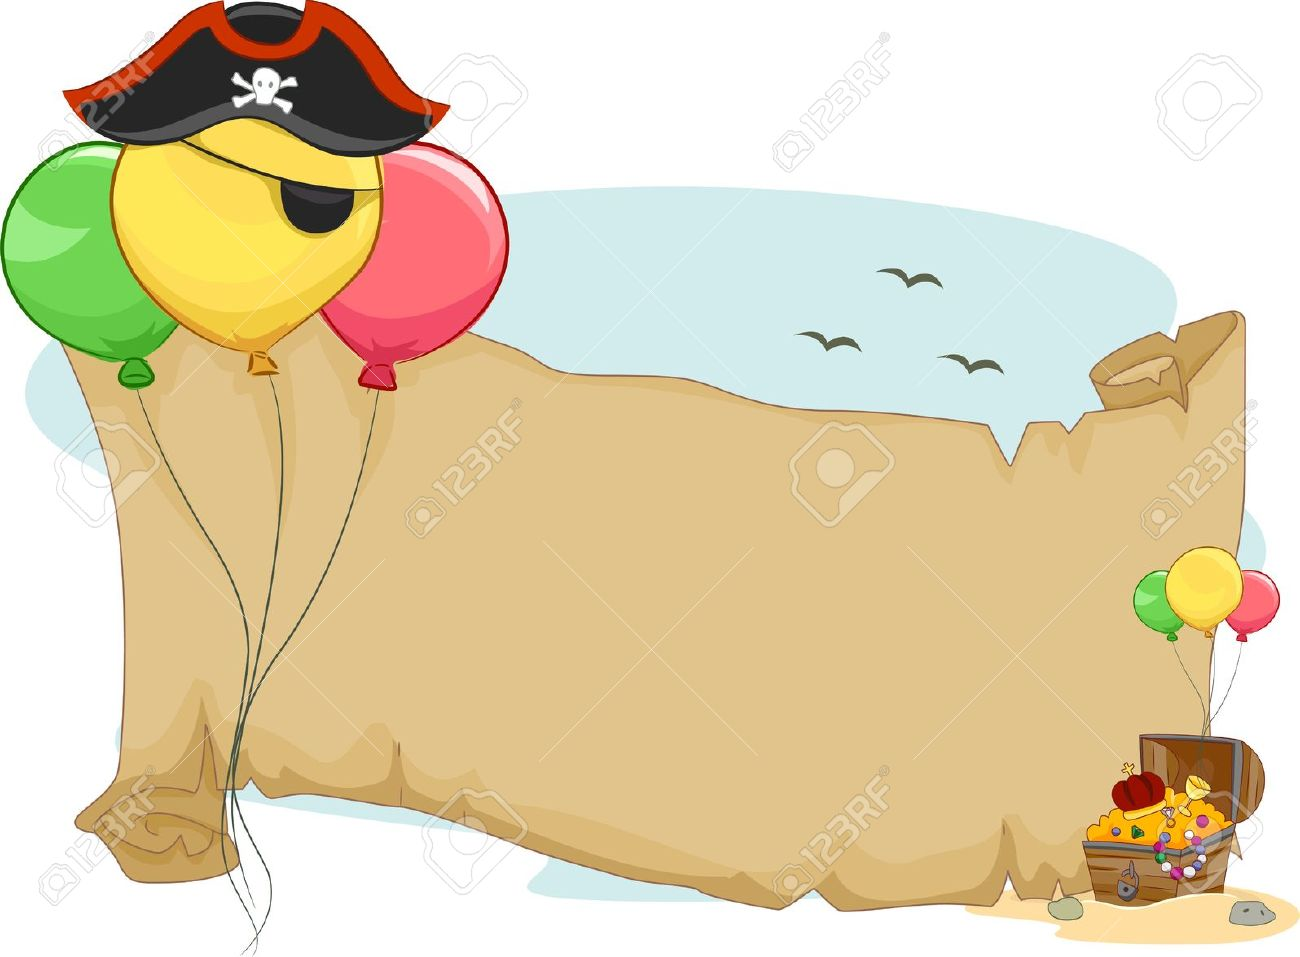 Illustration Of A Pirate Party Scroll With Balloons Stock Photo.